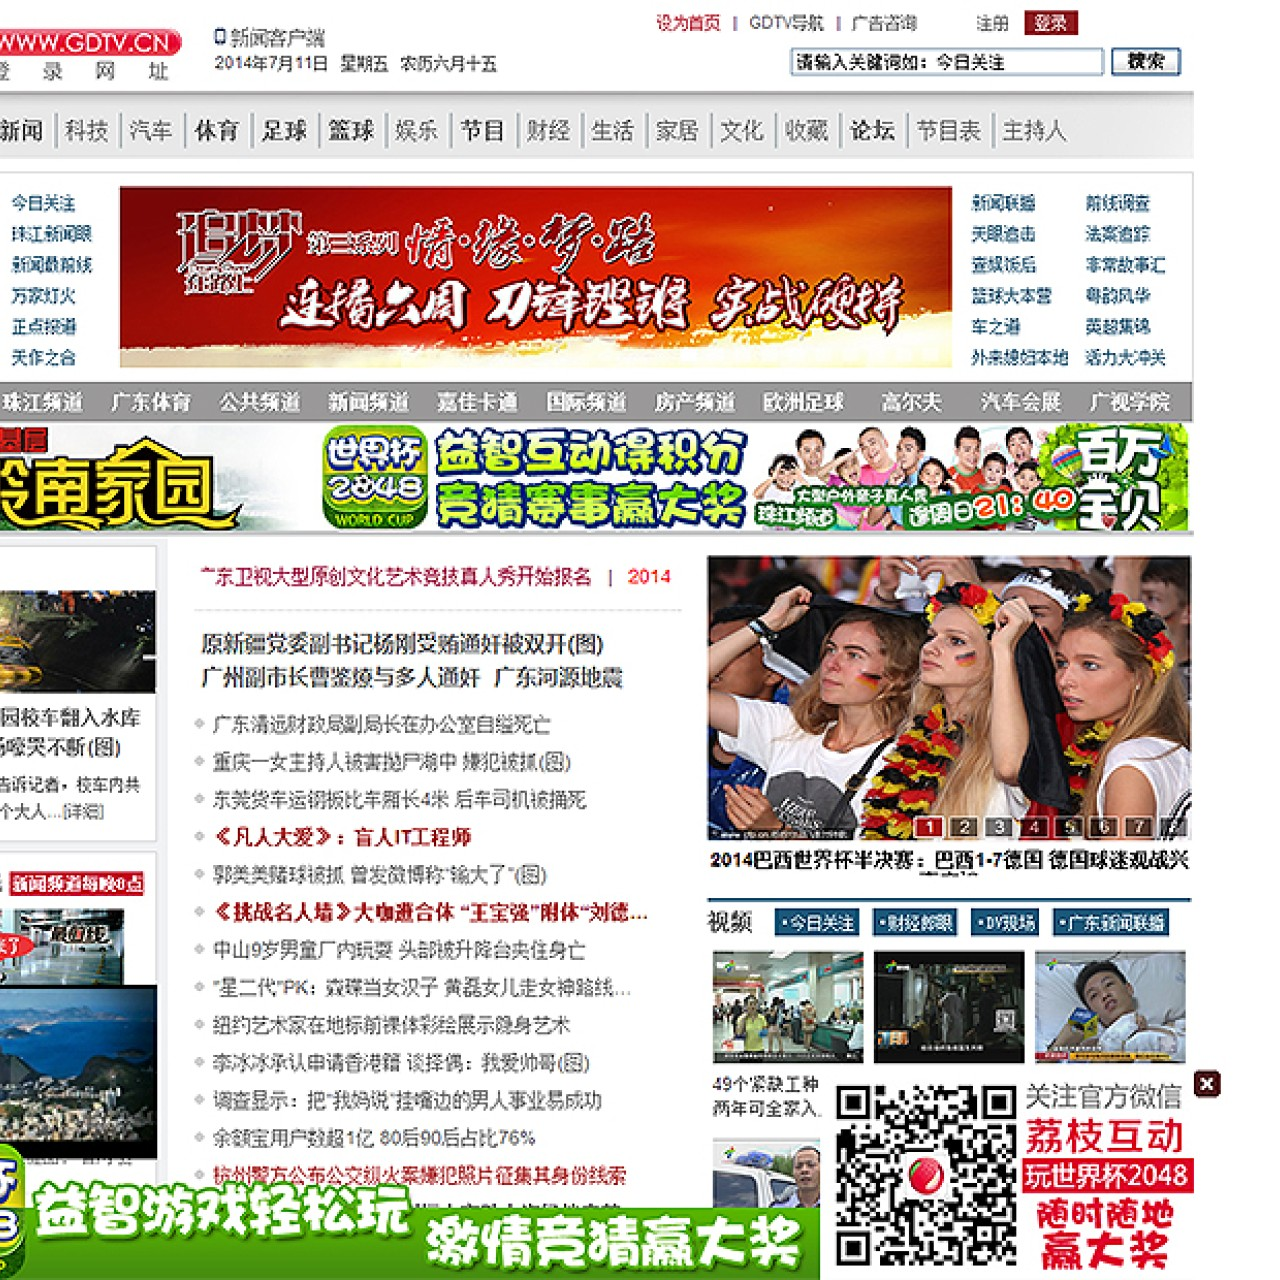 Guangdong TV news channel quietly changing from Cantonese to